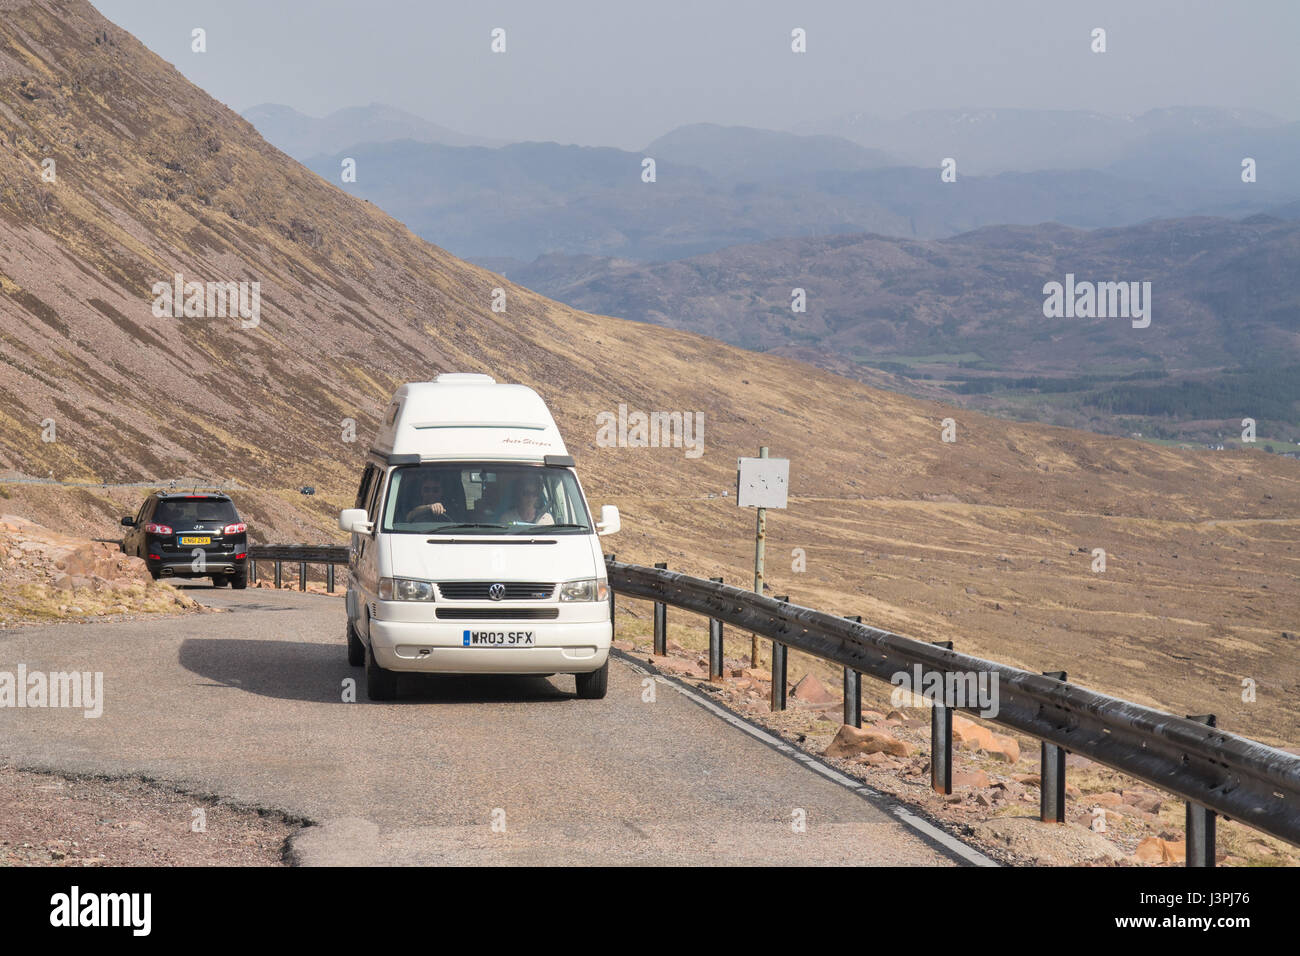 Bealach na ba road - part of the North Coast 500 route - camper van waiting at passing place for oncoming vehicle, - Stock Image